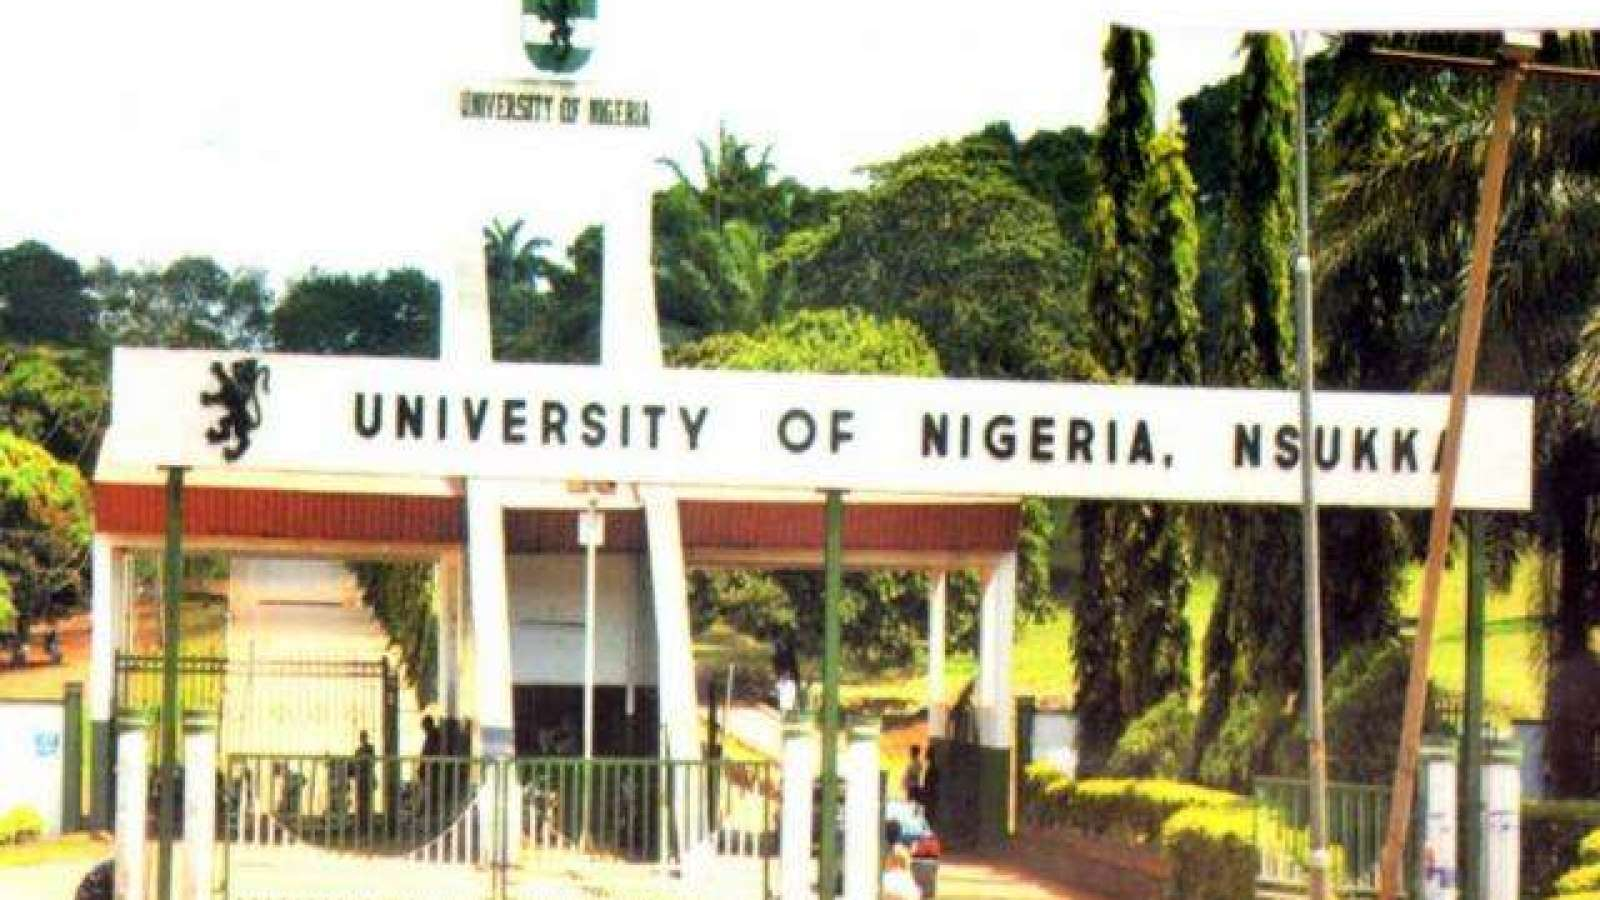 UNN Admission Screening Disclaimer Notice – Beware of Fraudsters